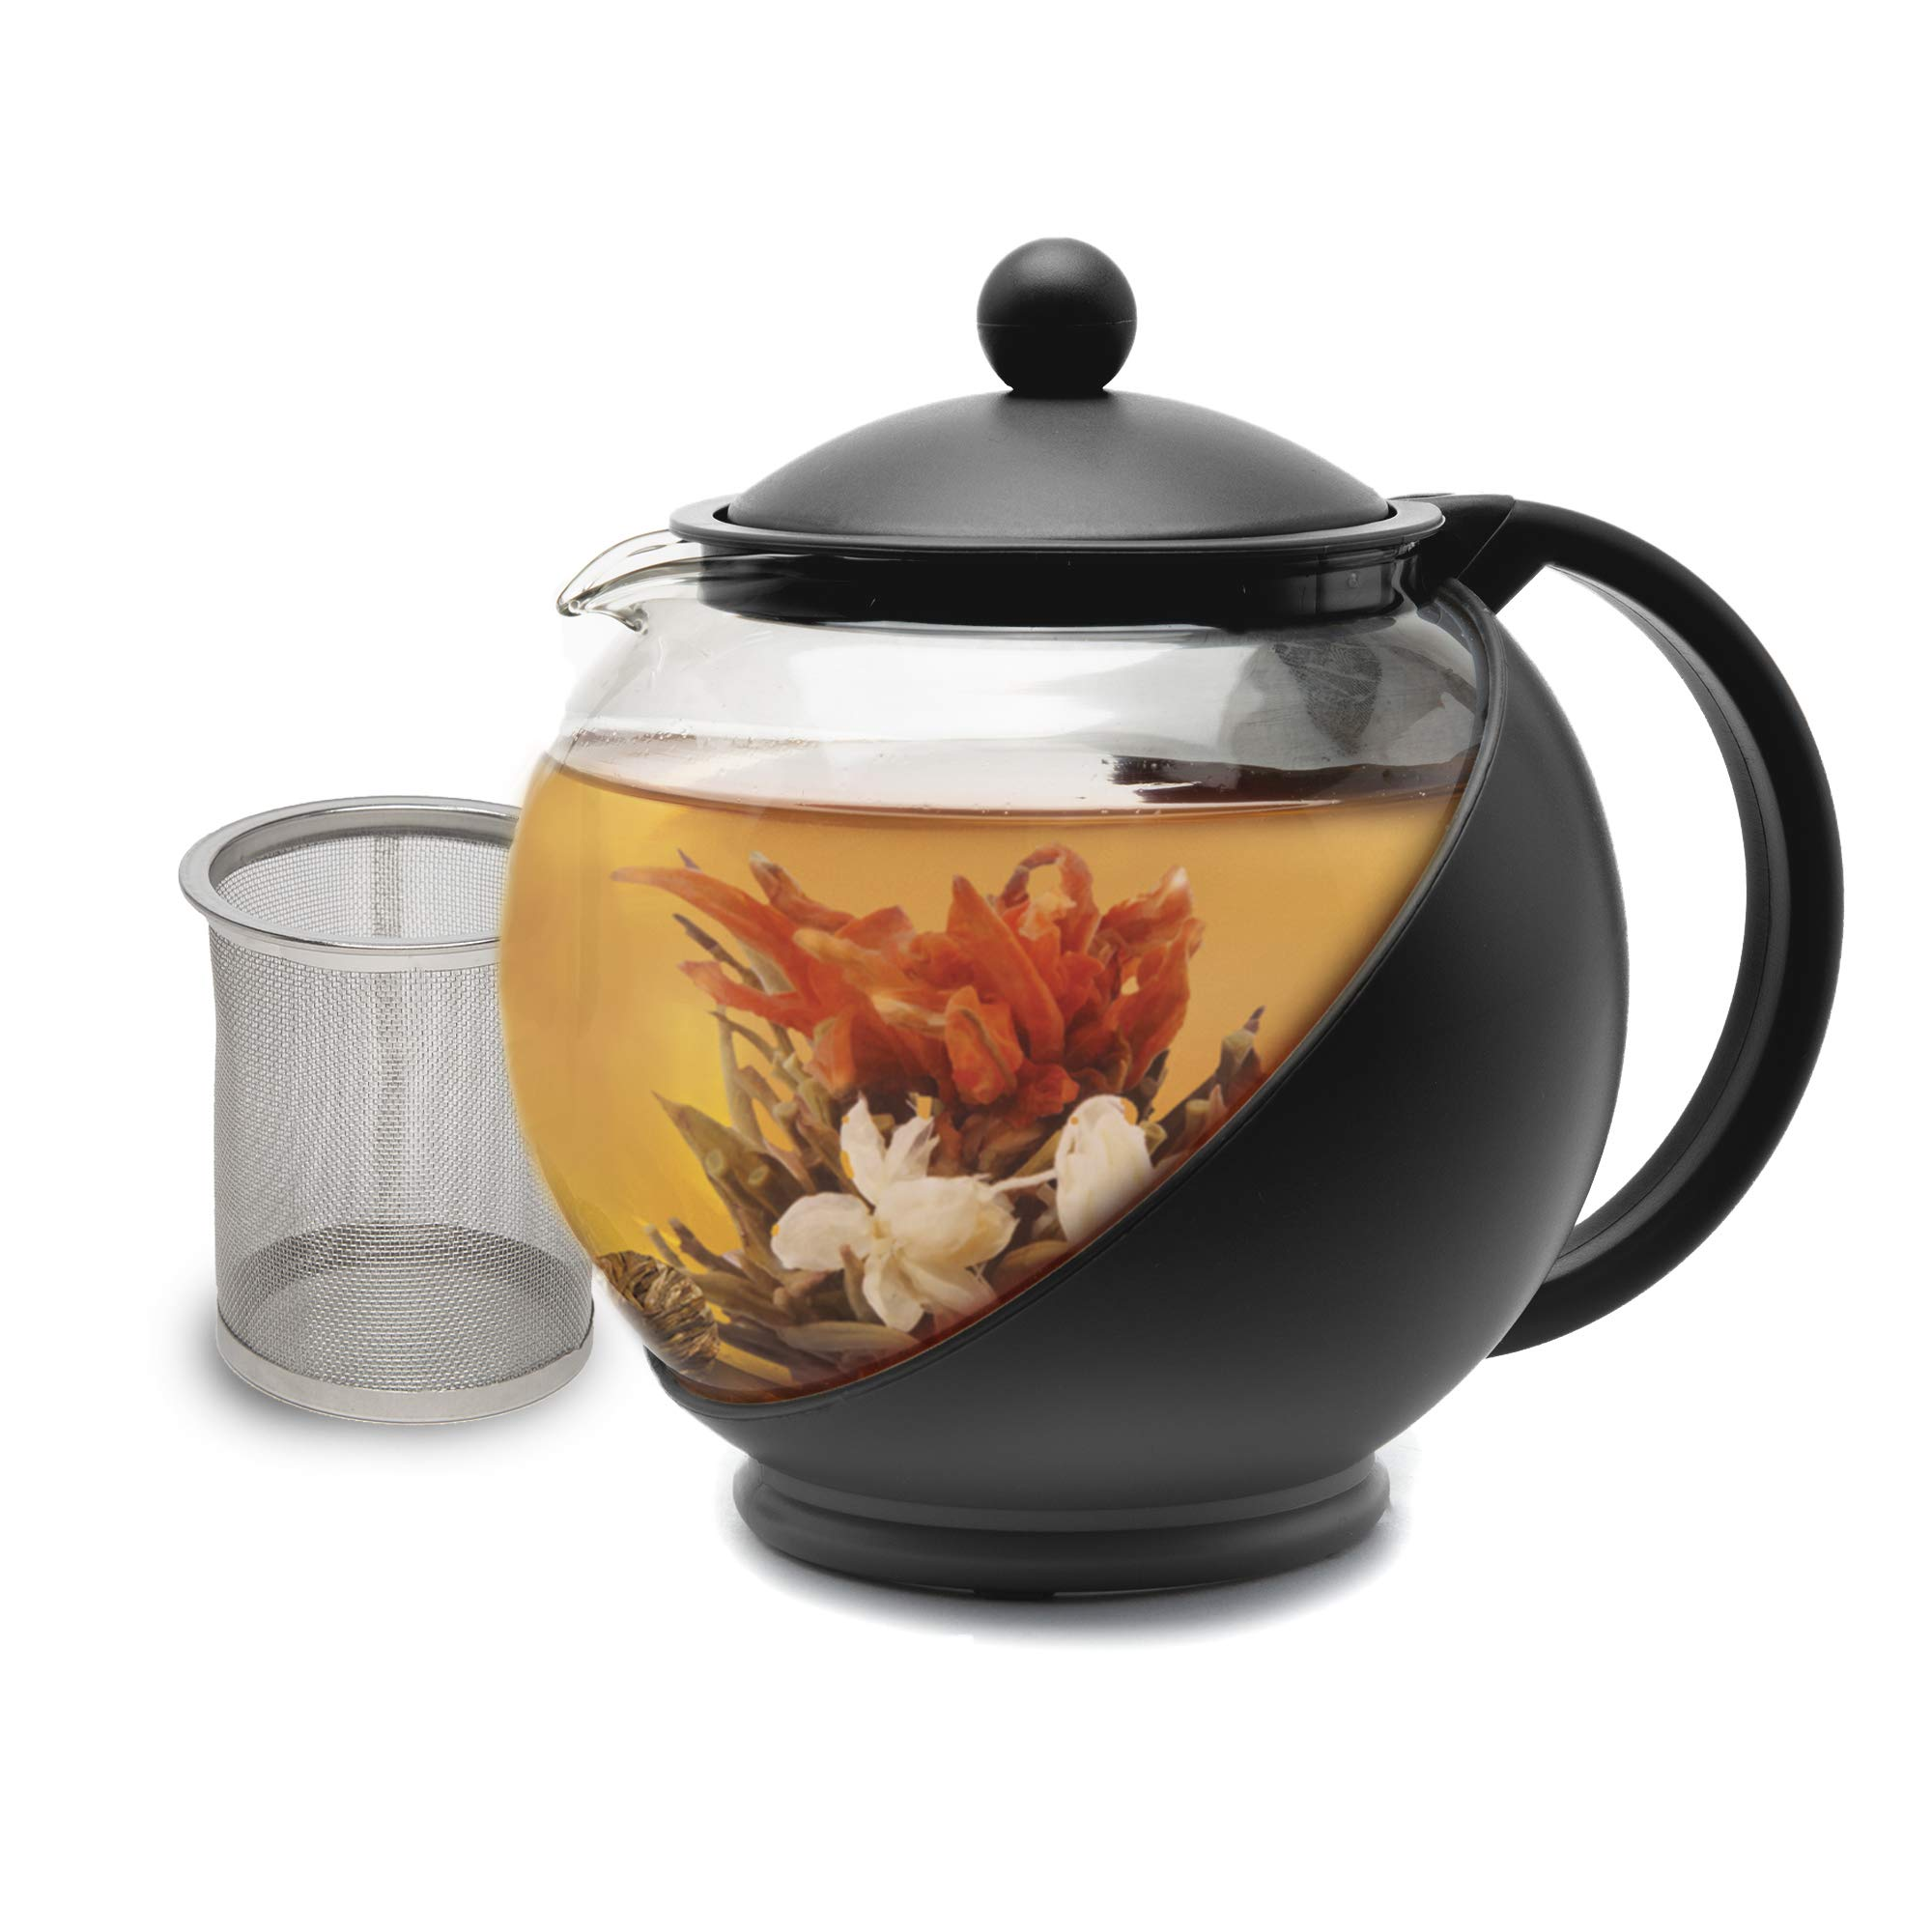 Primula Half Moon Teapot with Removable Infuser, Borosilicate Glass Tea Maker, Stainless Steel Filter, Dishwasher Safe, 40-Ounce, Black